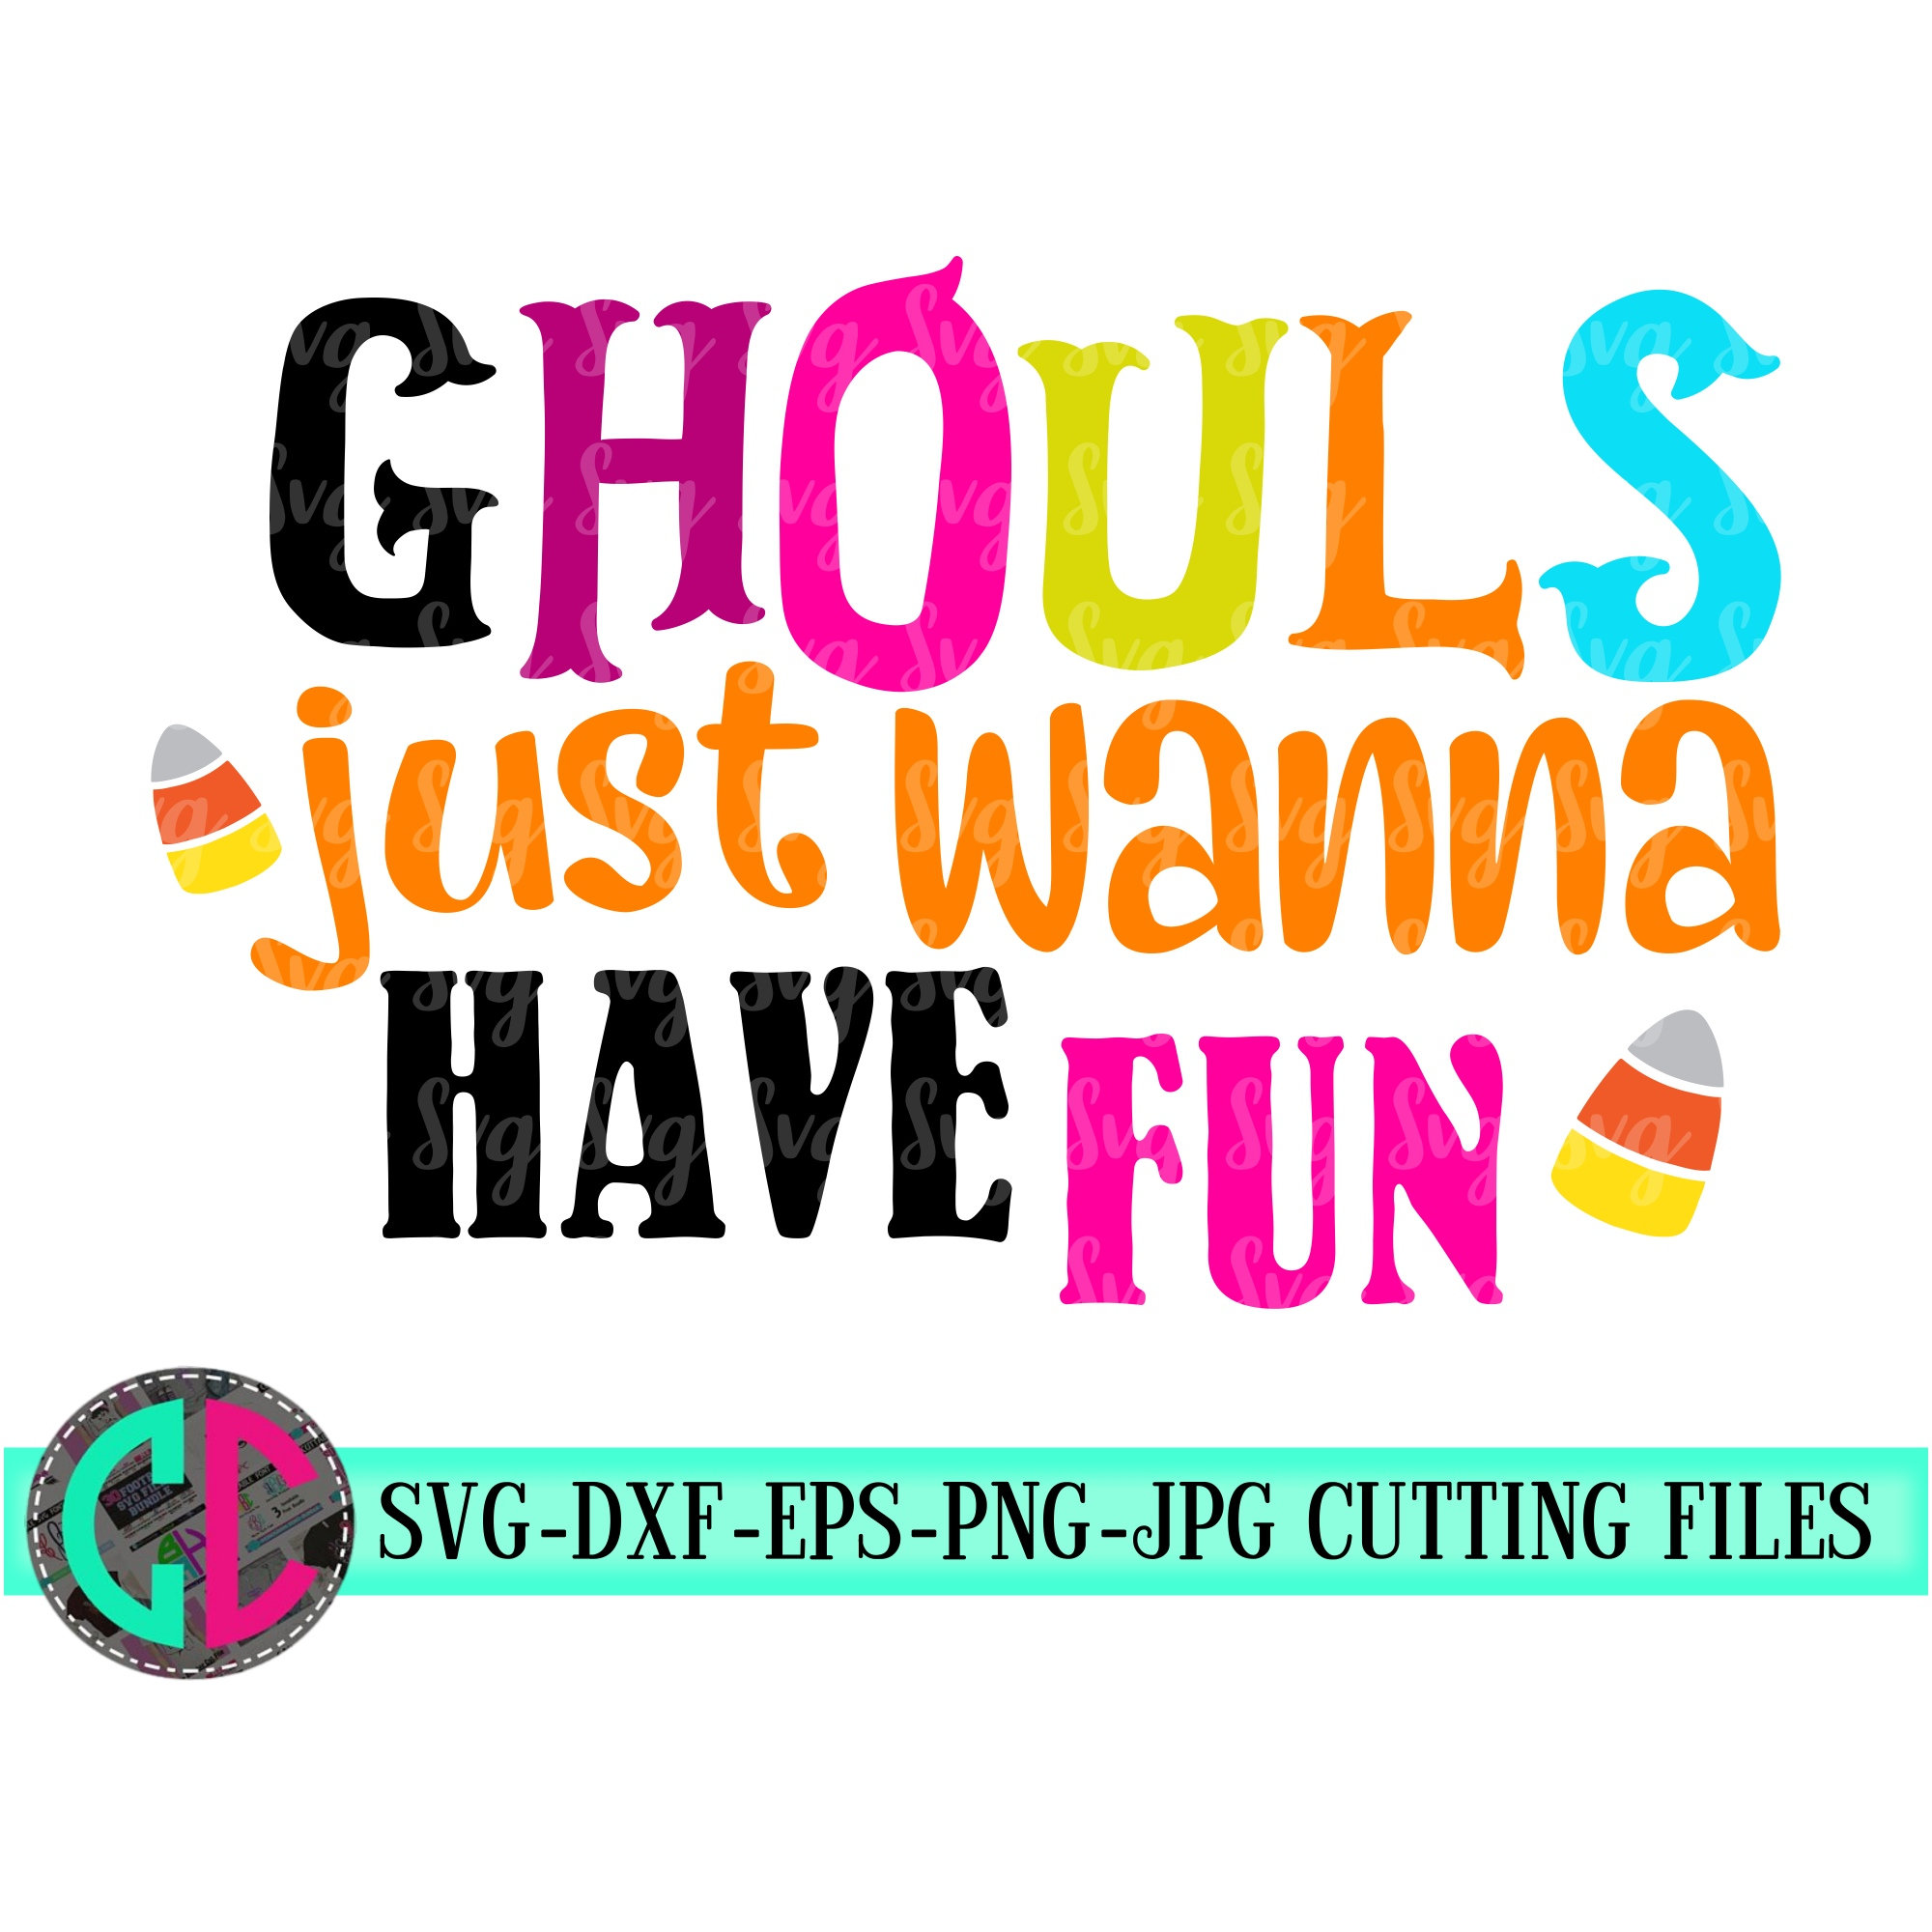 Ghouls Just Wanna Have Fun Svg Halloween Svg Candy Svg Toddler Svg Halloween Shirt Svg Silhouette Tshirt Svg For Cricut Halloween Candy Svg Svg For Cricut